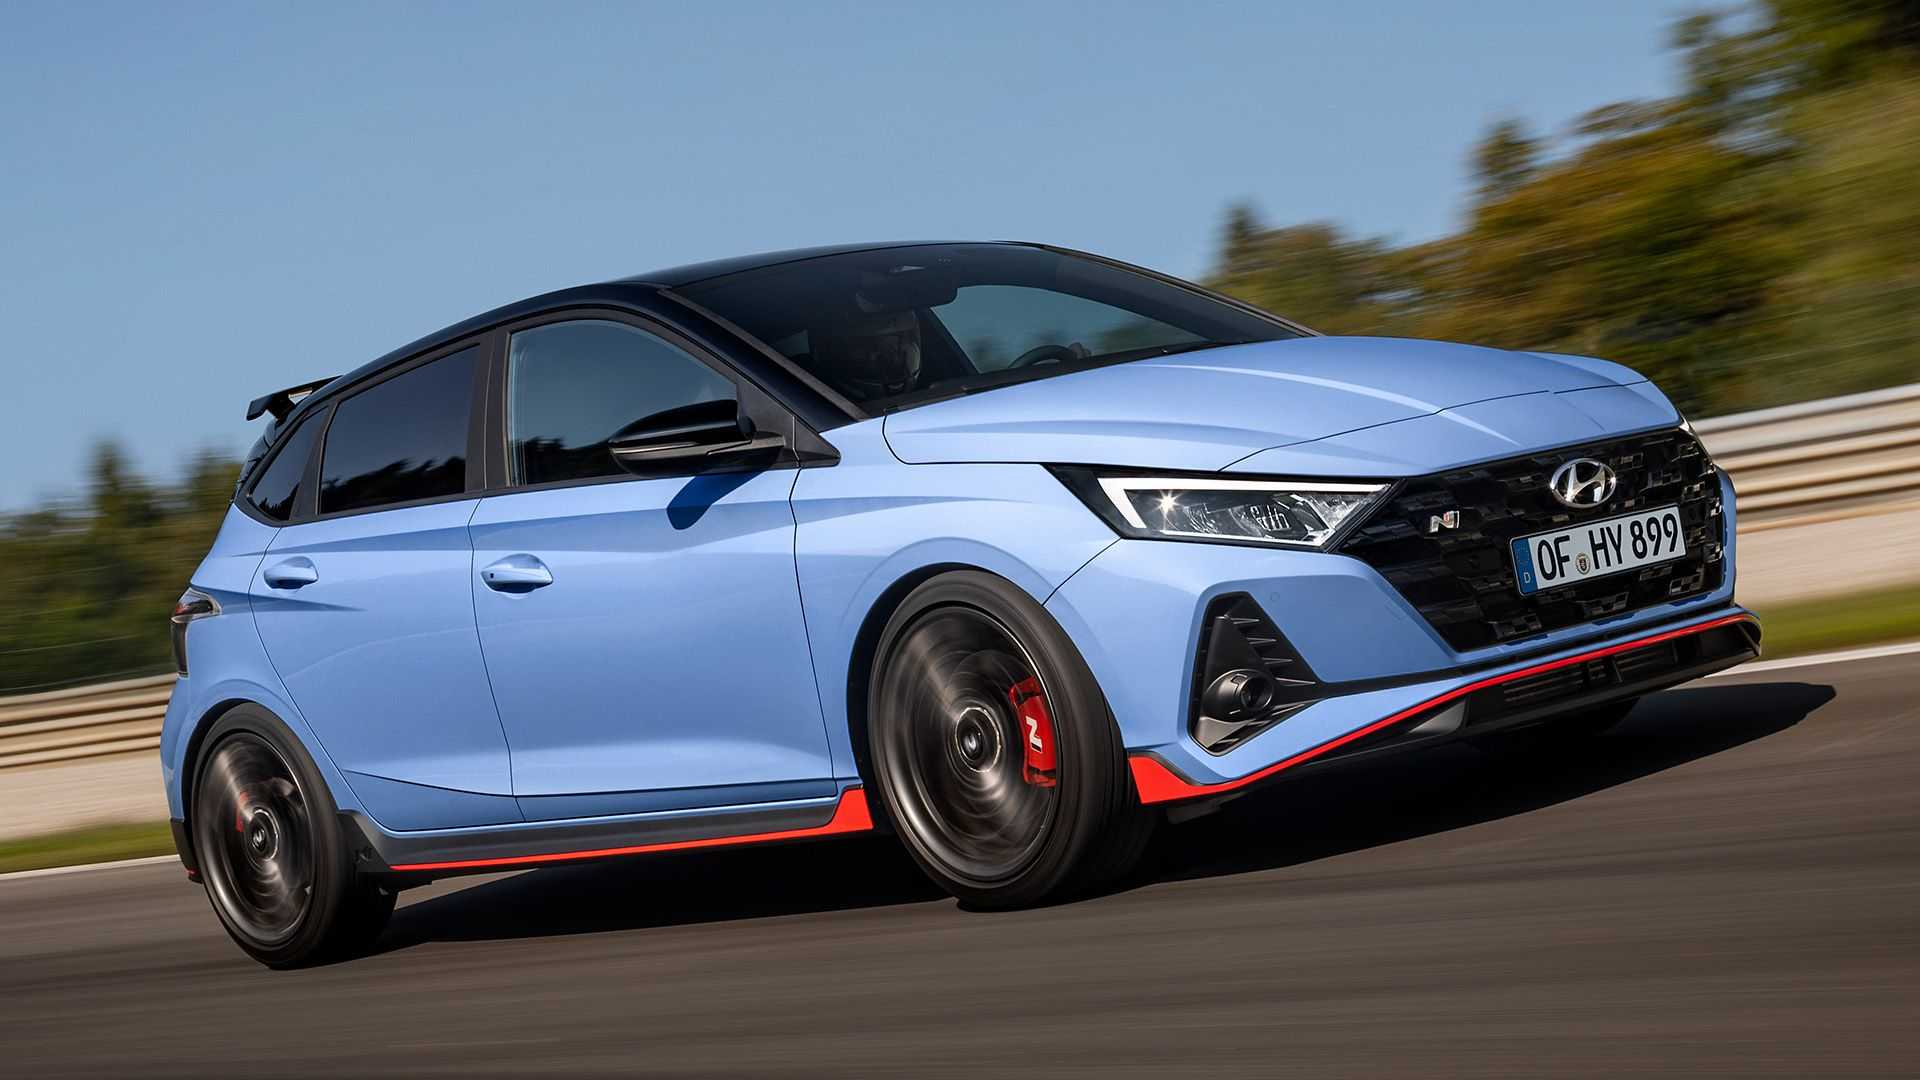 Auto bild hat die infos. Hot Hatches Are Dead Except For the 2021 Hyundai i20 N